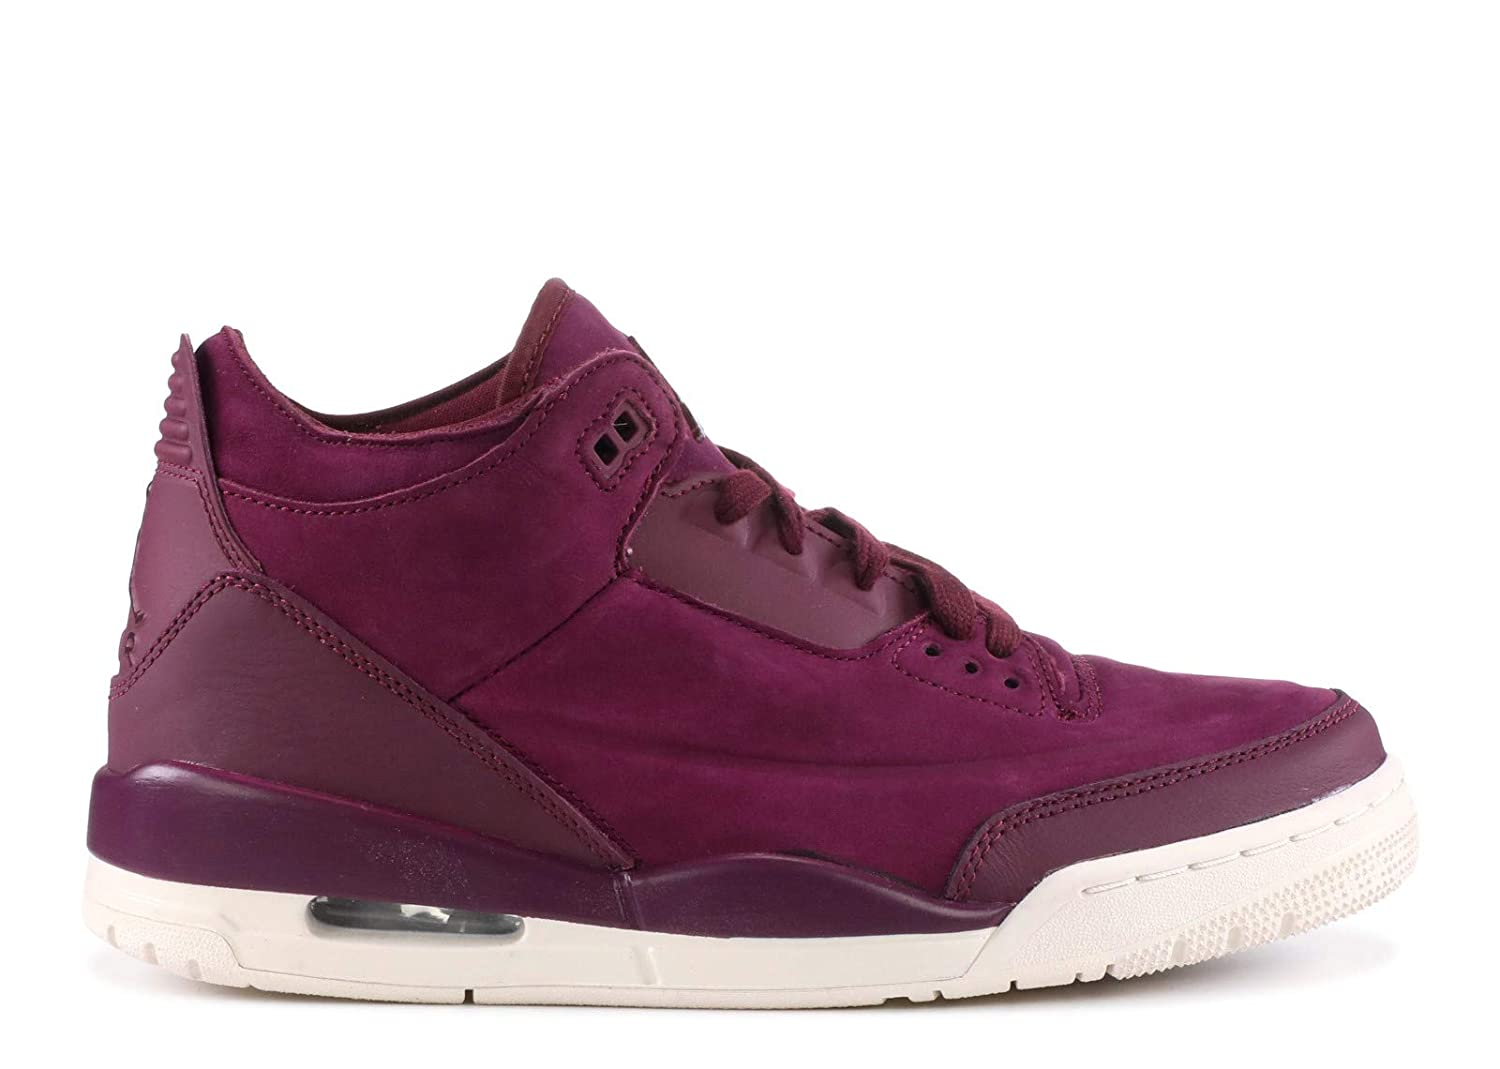 hot sale online 7e38d 258ca Amazon.com | AIR Jordan 3 Retro SE 'Bordeaux' Womens -AH7859 ...